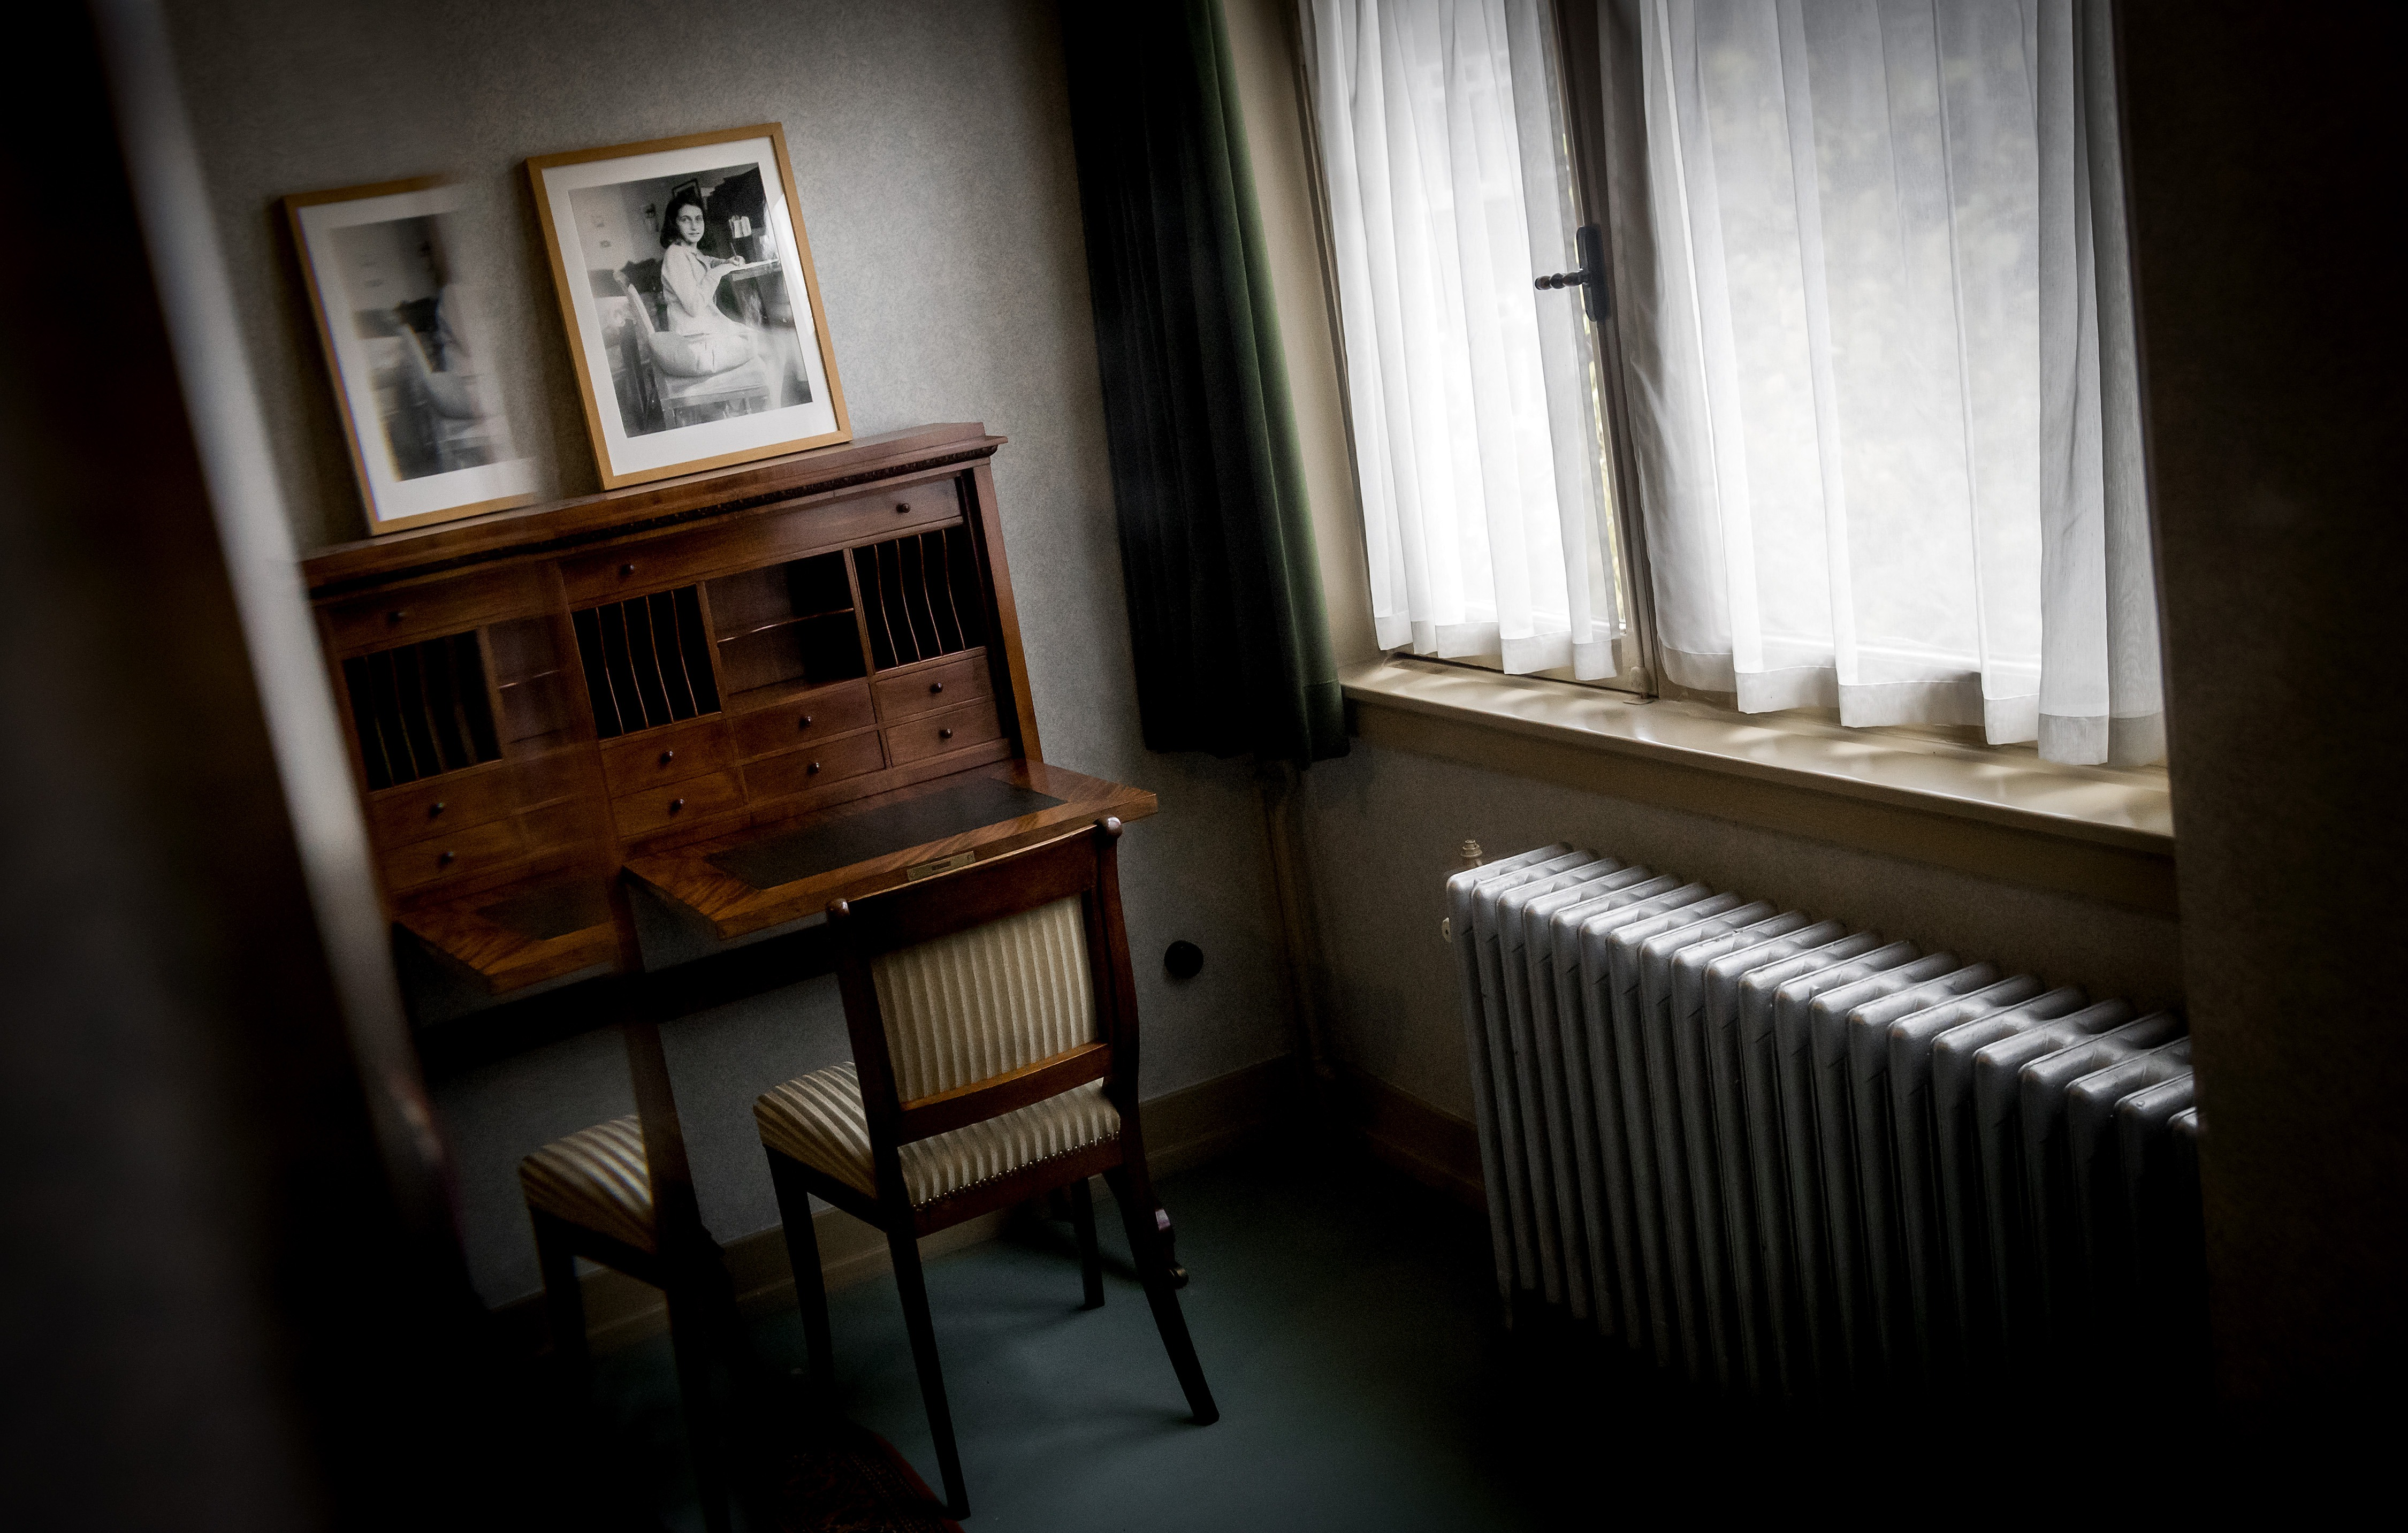 A picture taken on November 16, 2017 shows the room of Anne Frank in her former house in the Rivierenbuurt in Amsterdam. The Ymere housing association and the Anne Frank Foundation reached an agreement to sell the house to the foundation. / AFP PHOTO / ANP / Koen van Weel / Netherlands OUT (Photo credit should read KOEN VAN WEEL/AFP/Getty Images)